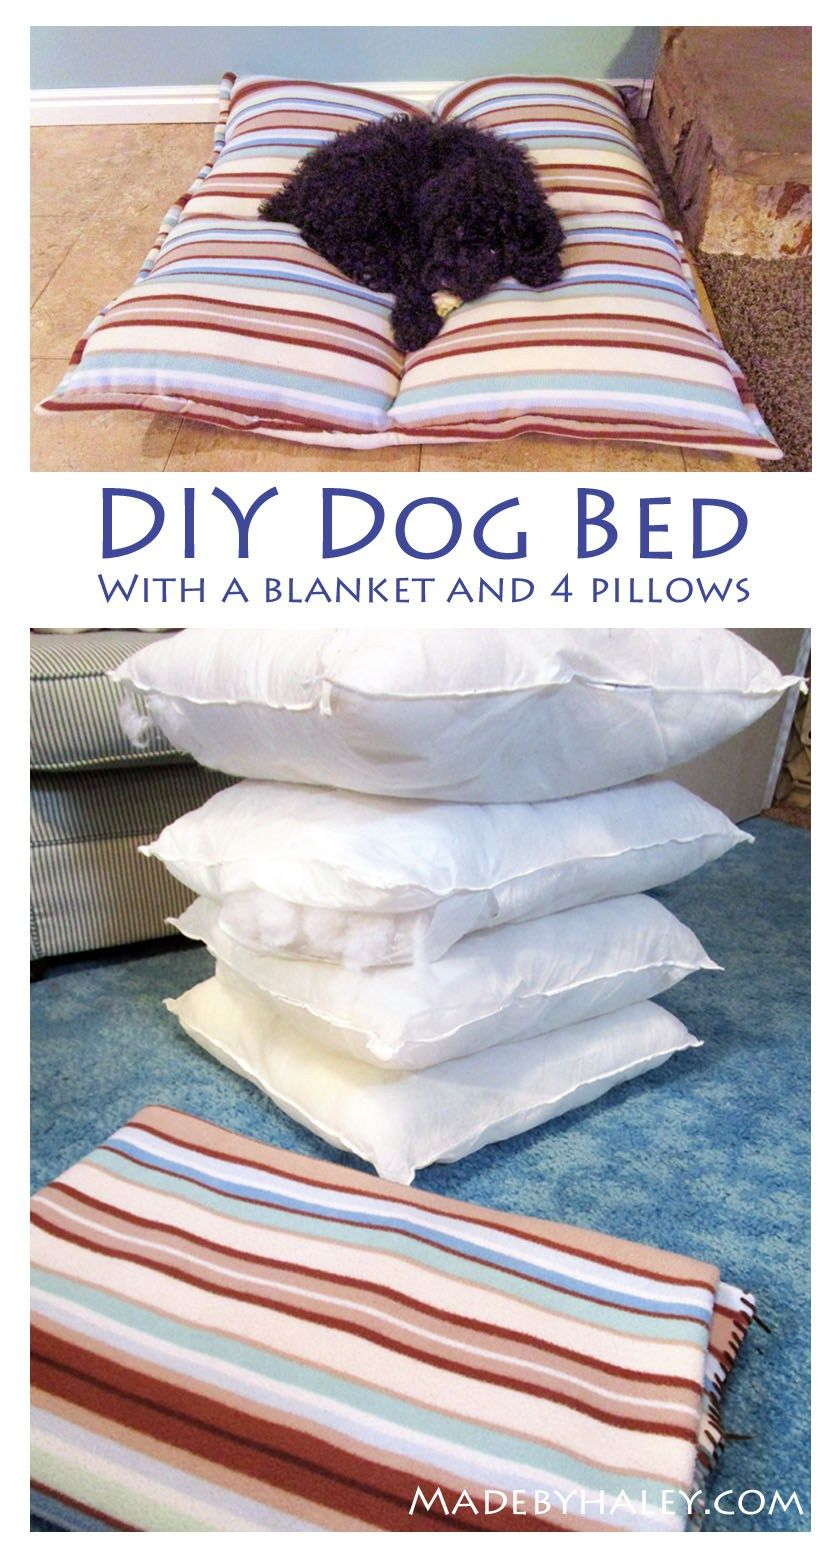 diy dog bed with things you already have made by haley blog